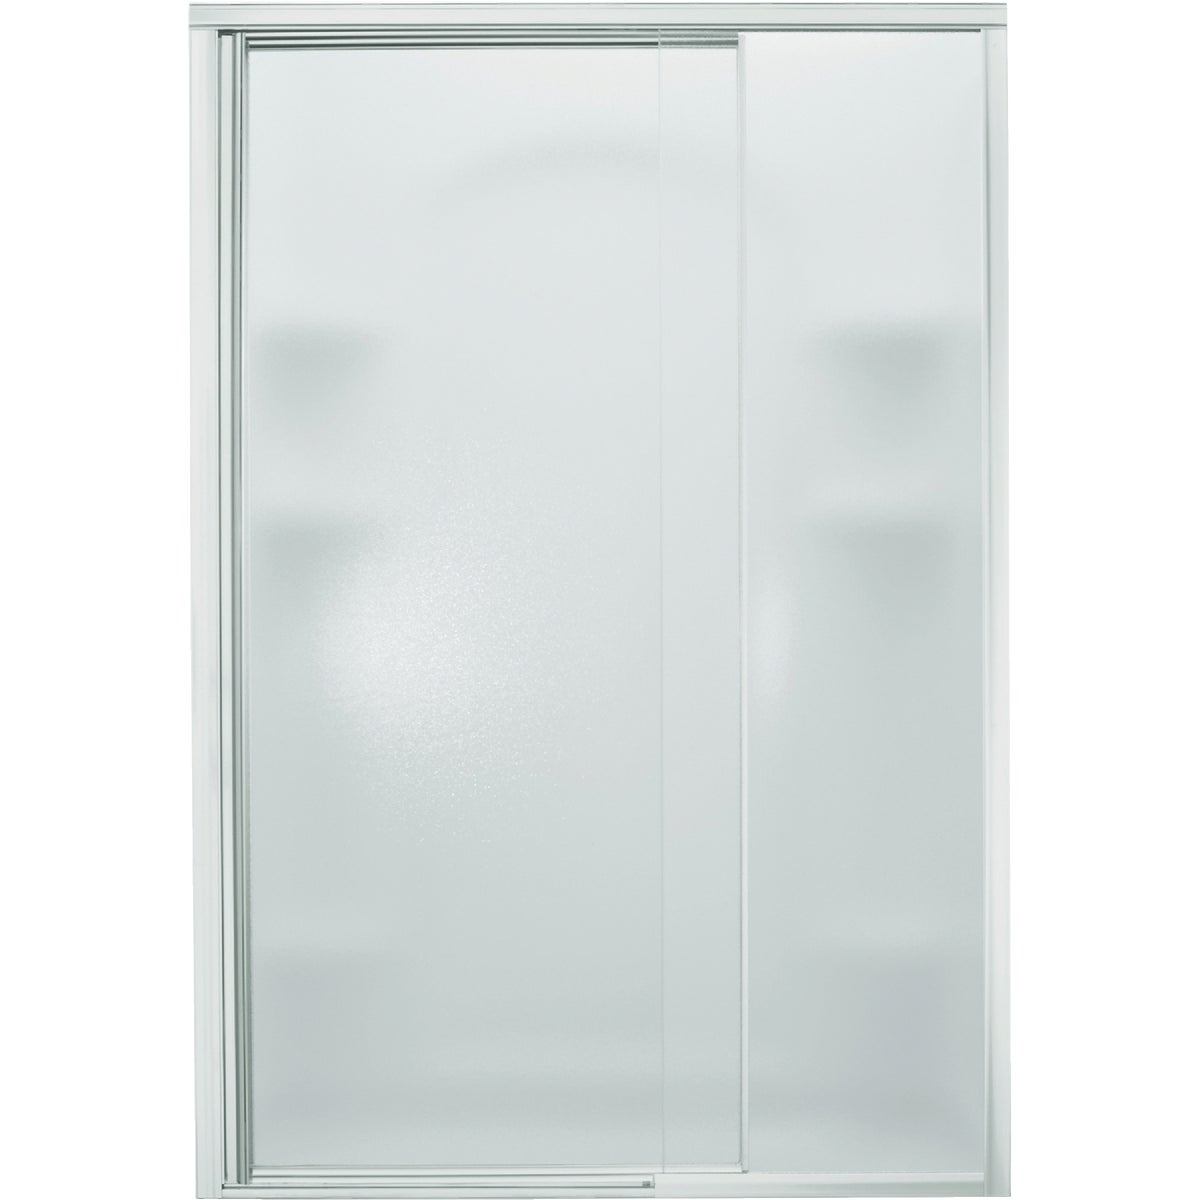 SILVER PIVOT SHOWER DOOR